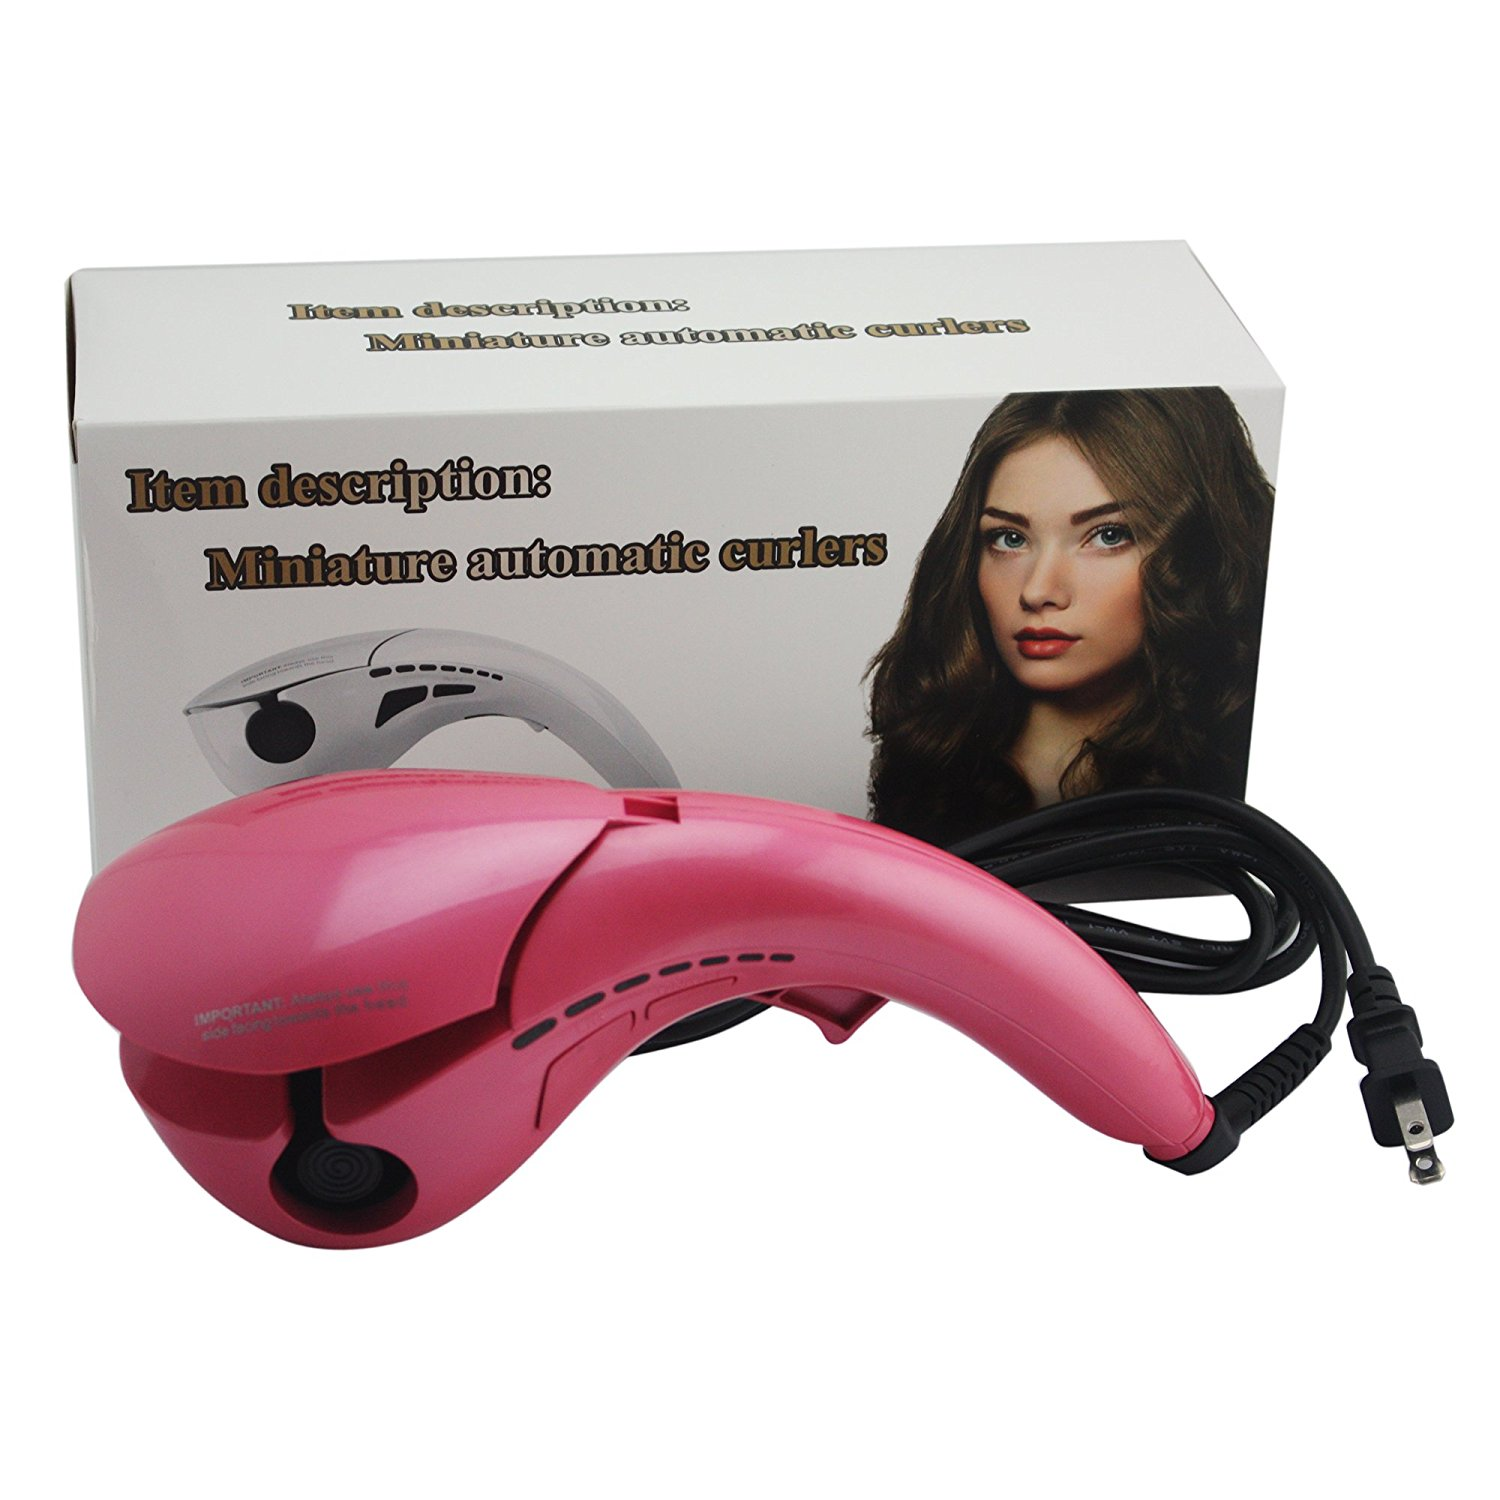 mermaid magic hair curling iron tools mini anion ceramic luxury automatic curler rolling curling set electric steam hair curler